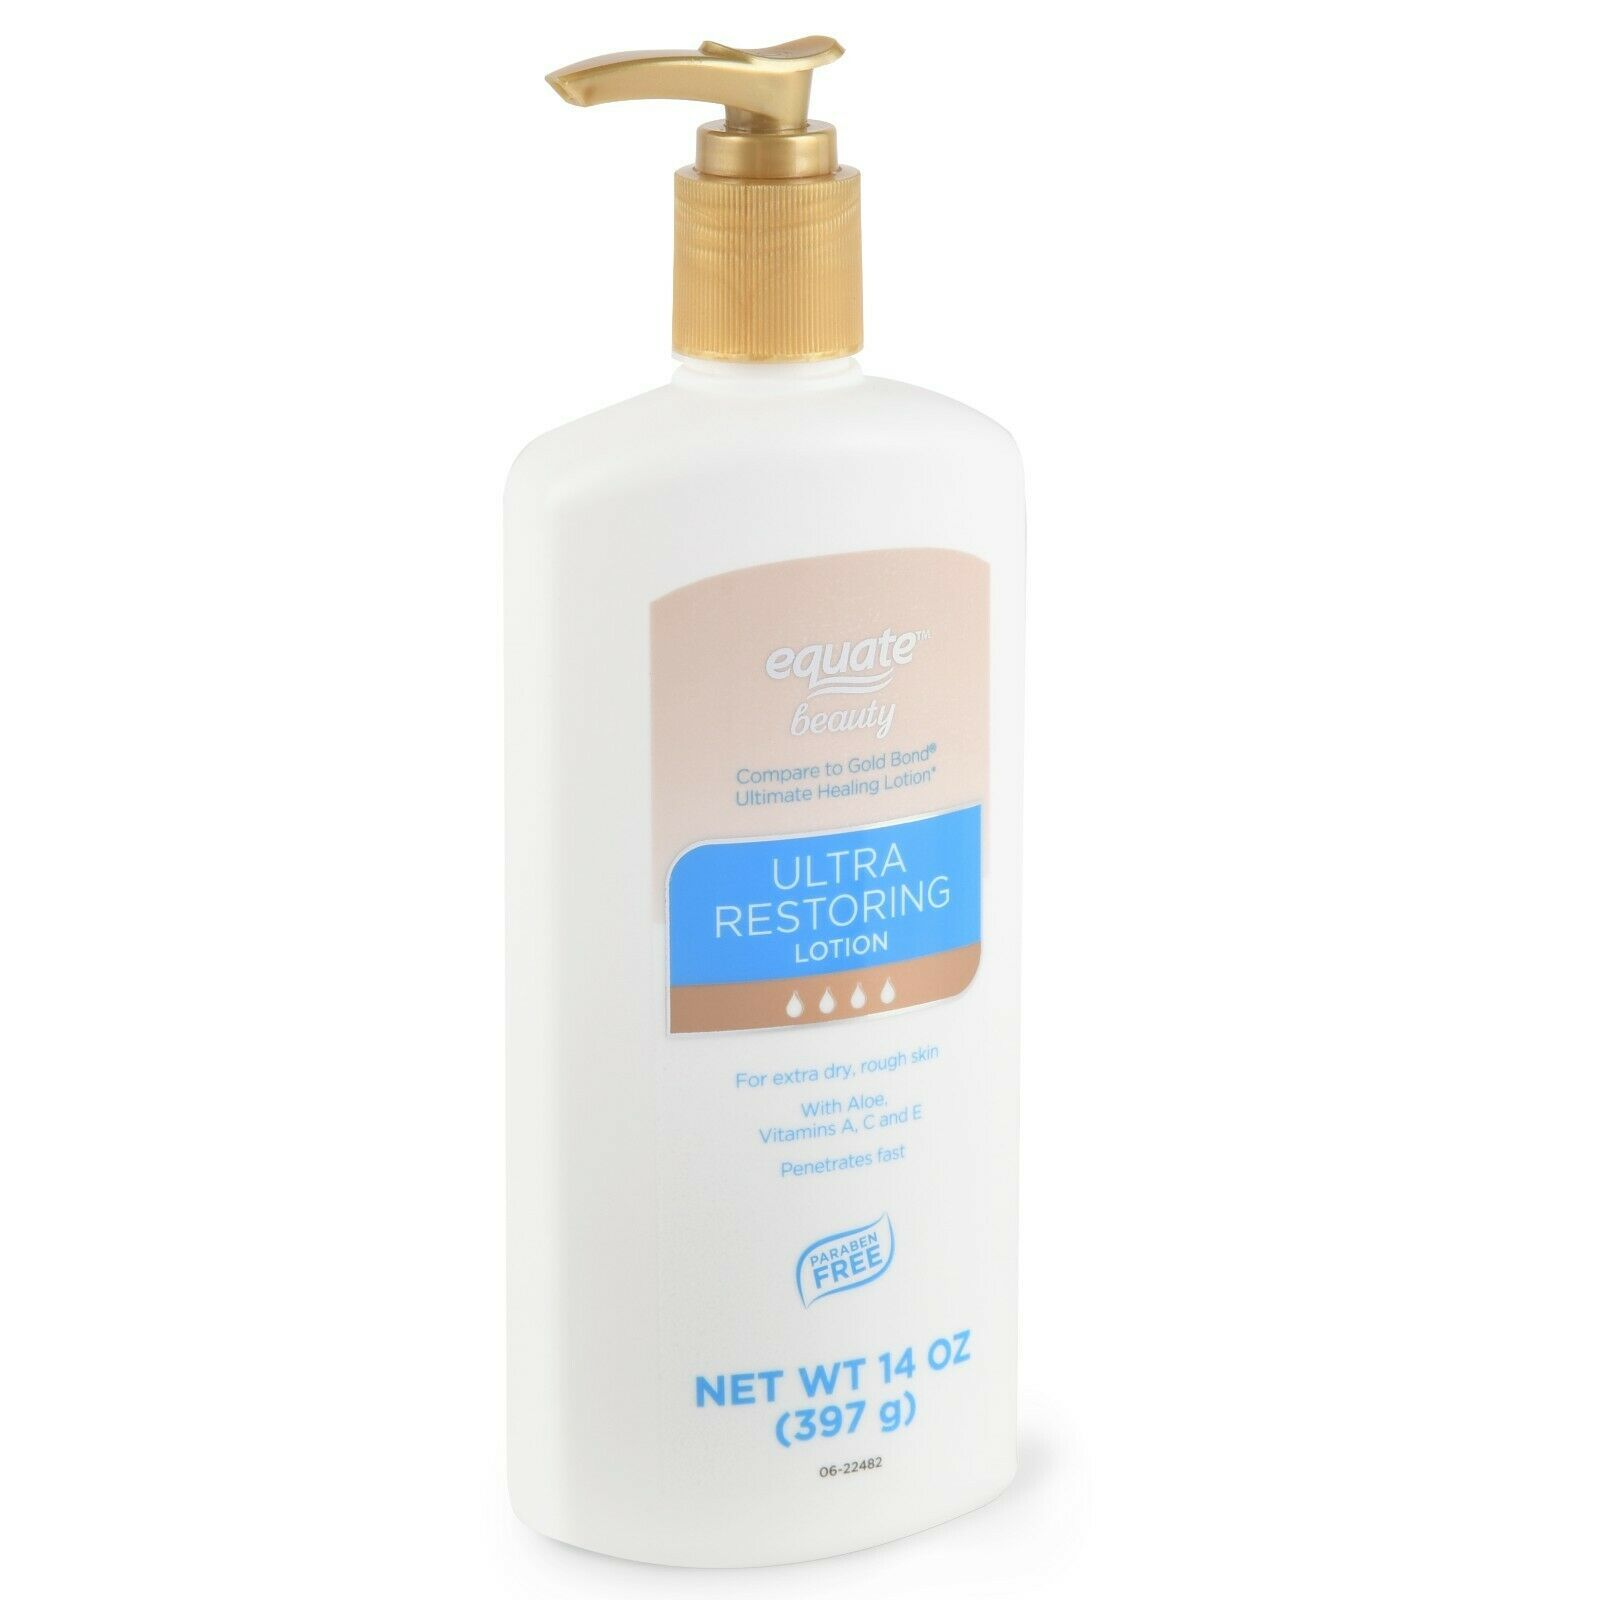 Equate Beauty Ultra Restoring Skin Therapy Lotion, 14 Oz+ - $19.79